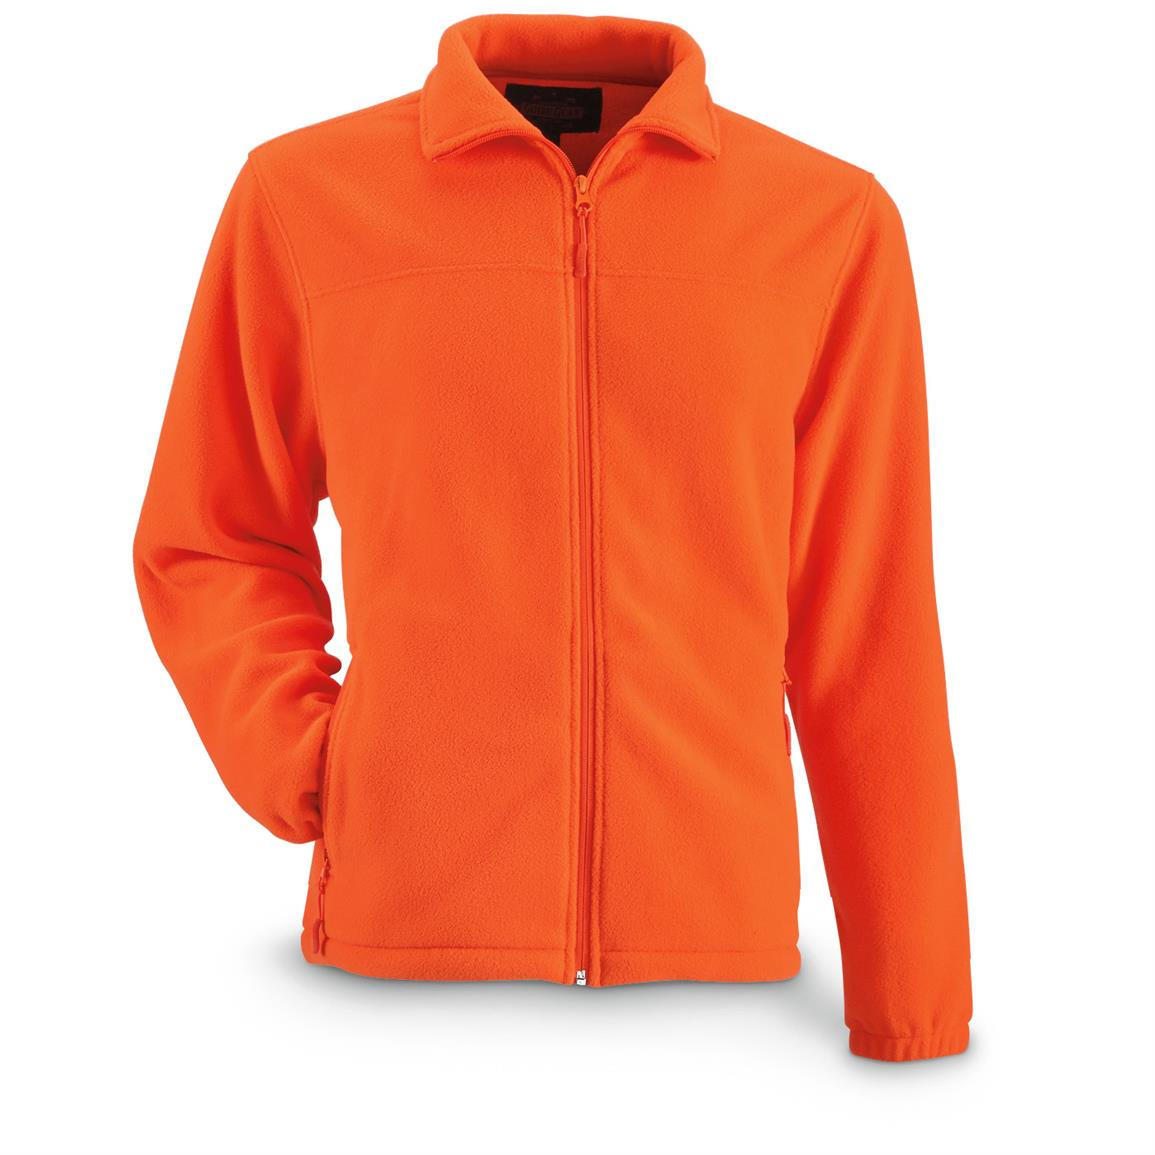 Guide Gear Men's Fleece Full Zip Jacket, Blaze